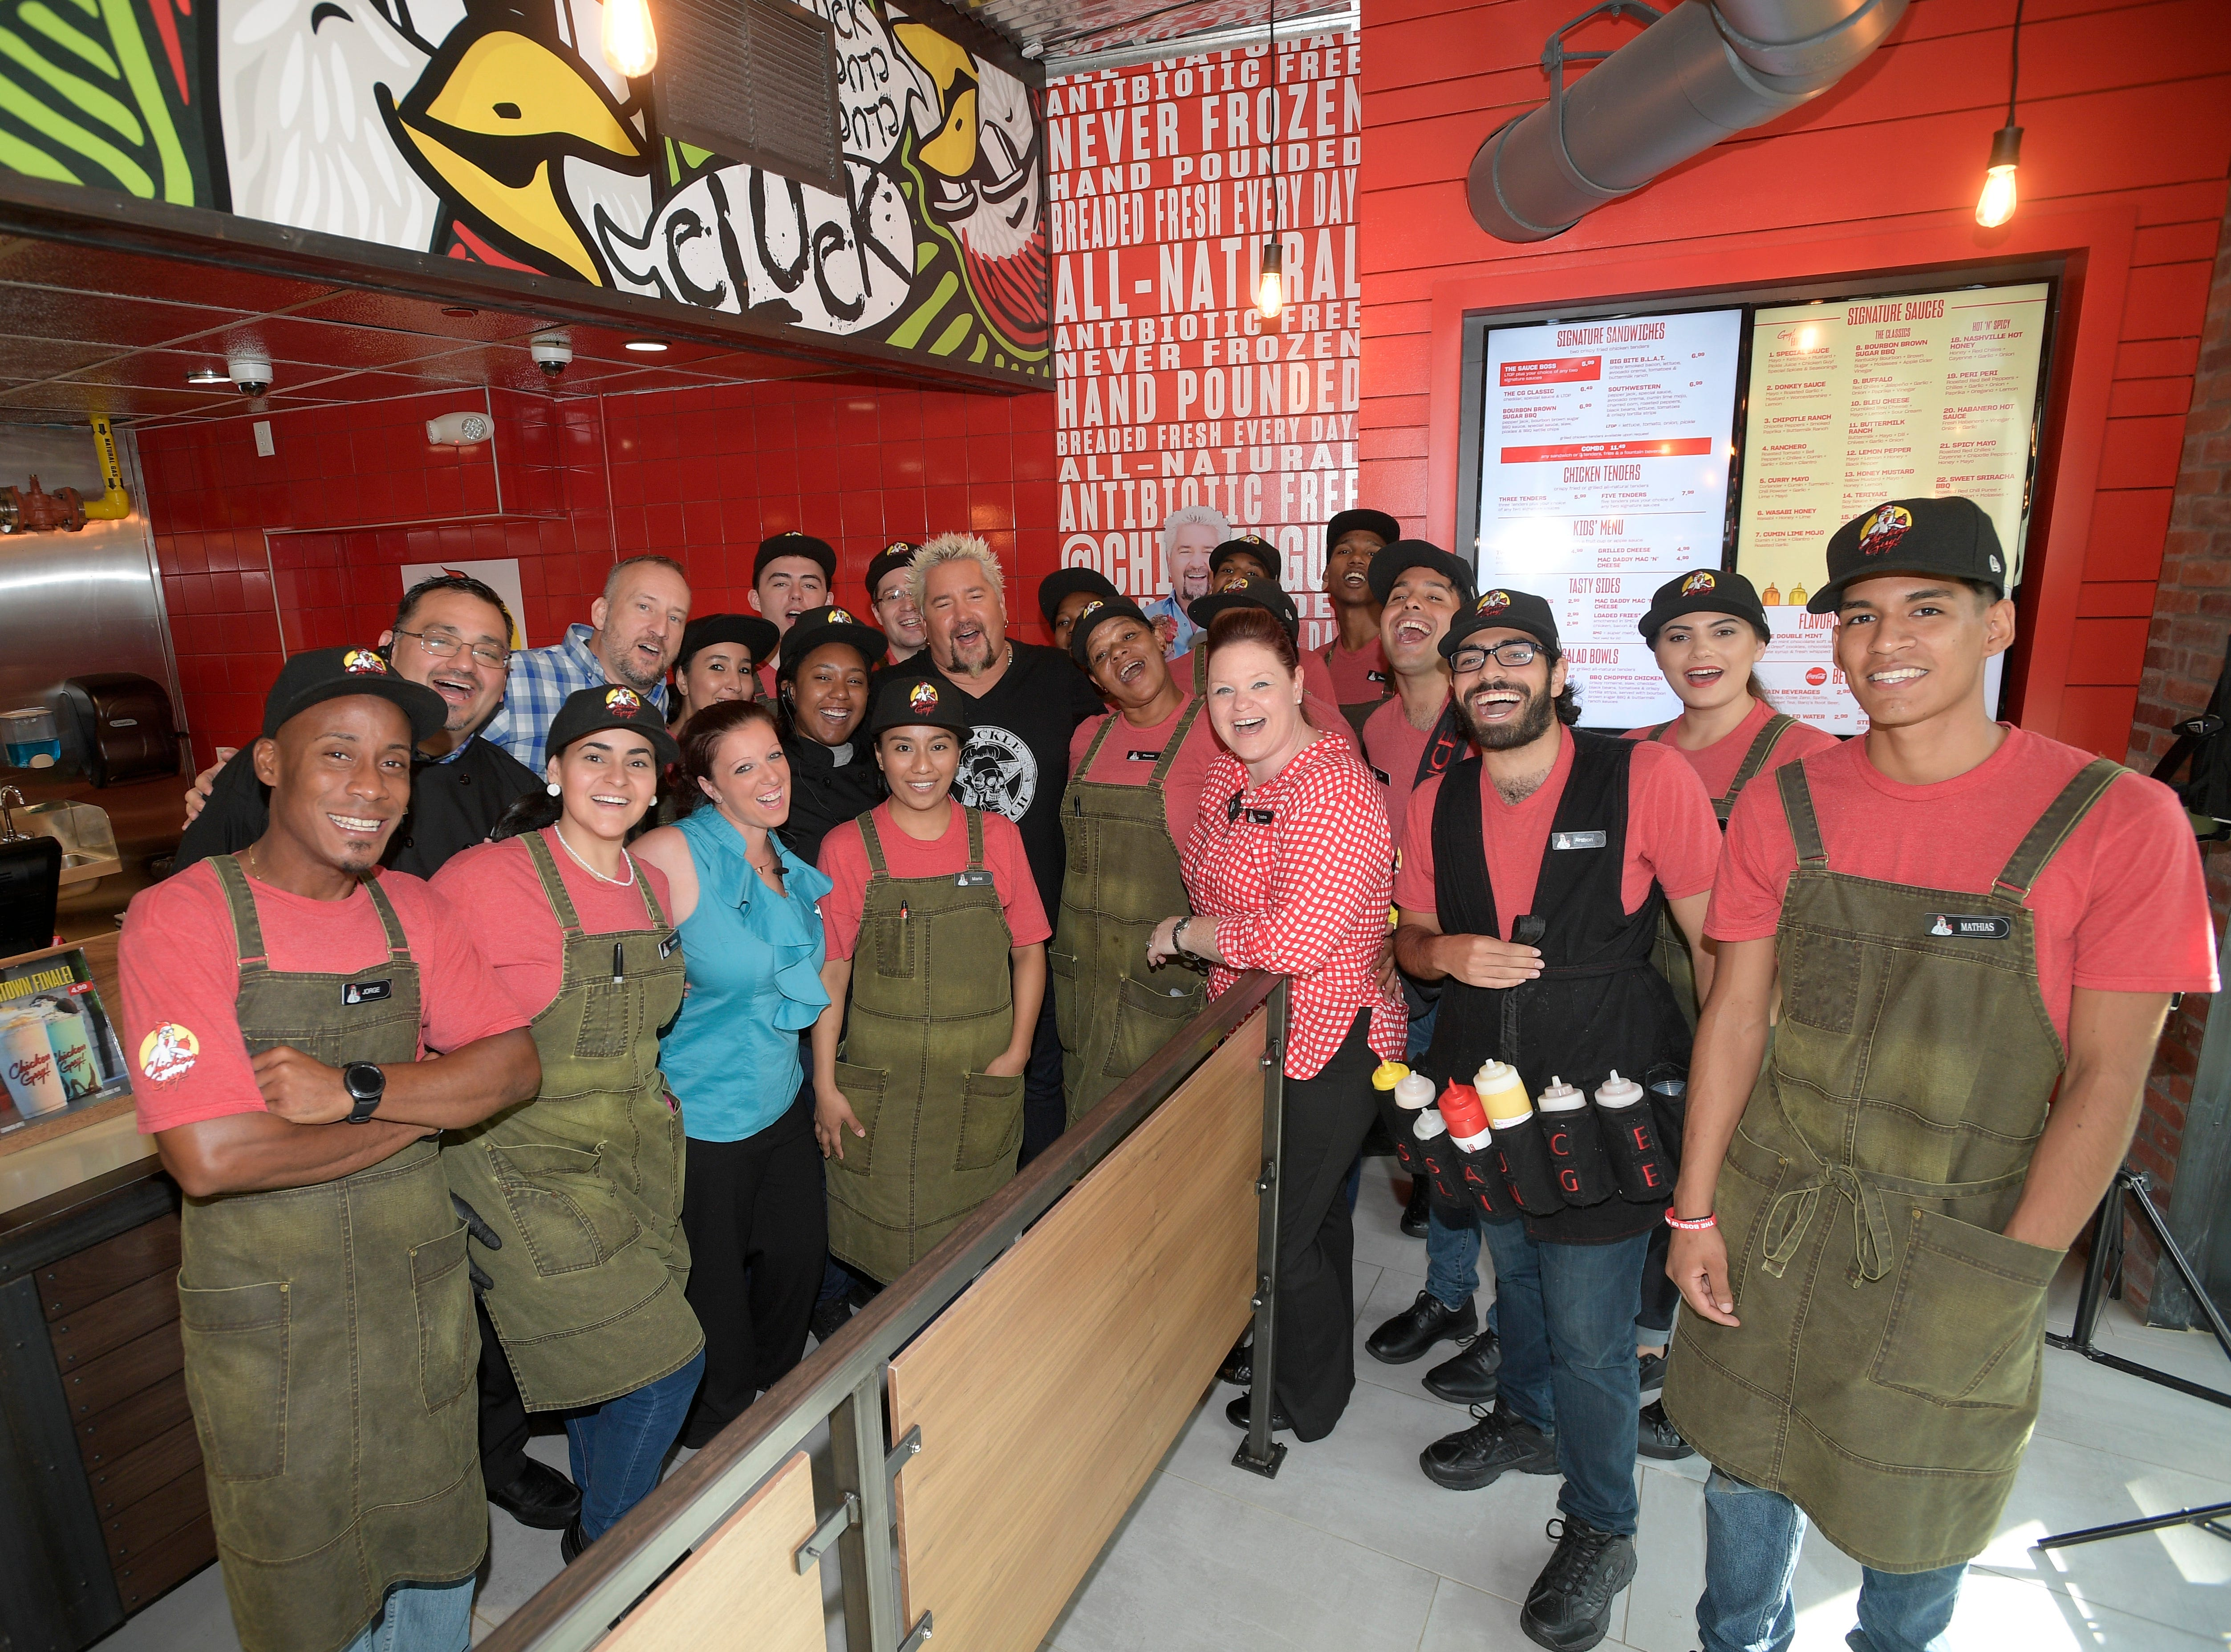 Chef Guy Fieri, center, was at Chicken Guy! at Disney Springs Monday for a special ribbon-cutting ceremony.